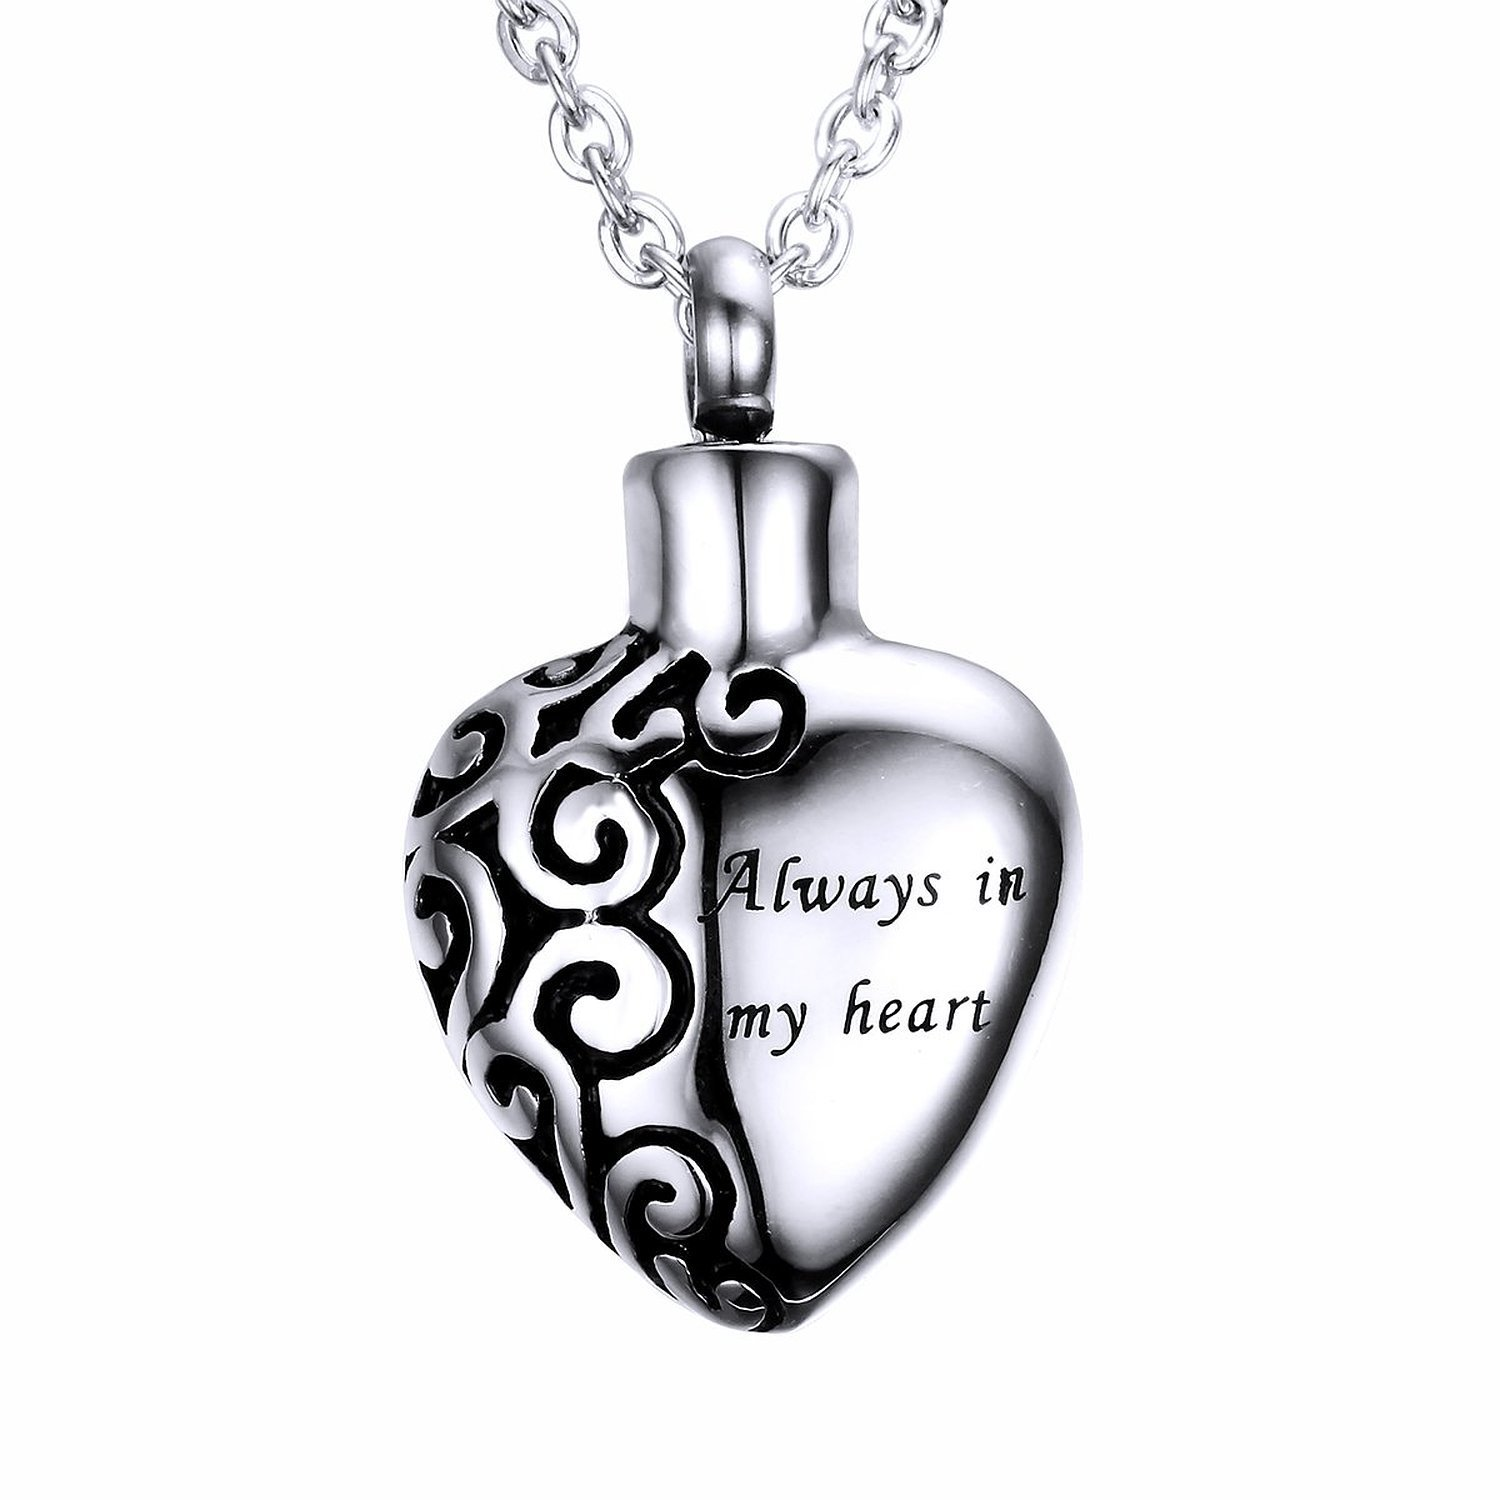 Blowin Stainless Steel ''Always in my heart'' Urn Pendant Memorial Ash Keepsake Cremation Heart Necklace, 22 Inch Chain